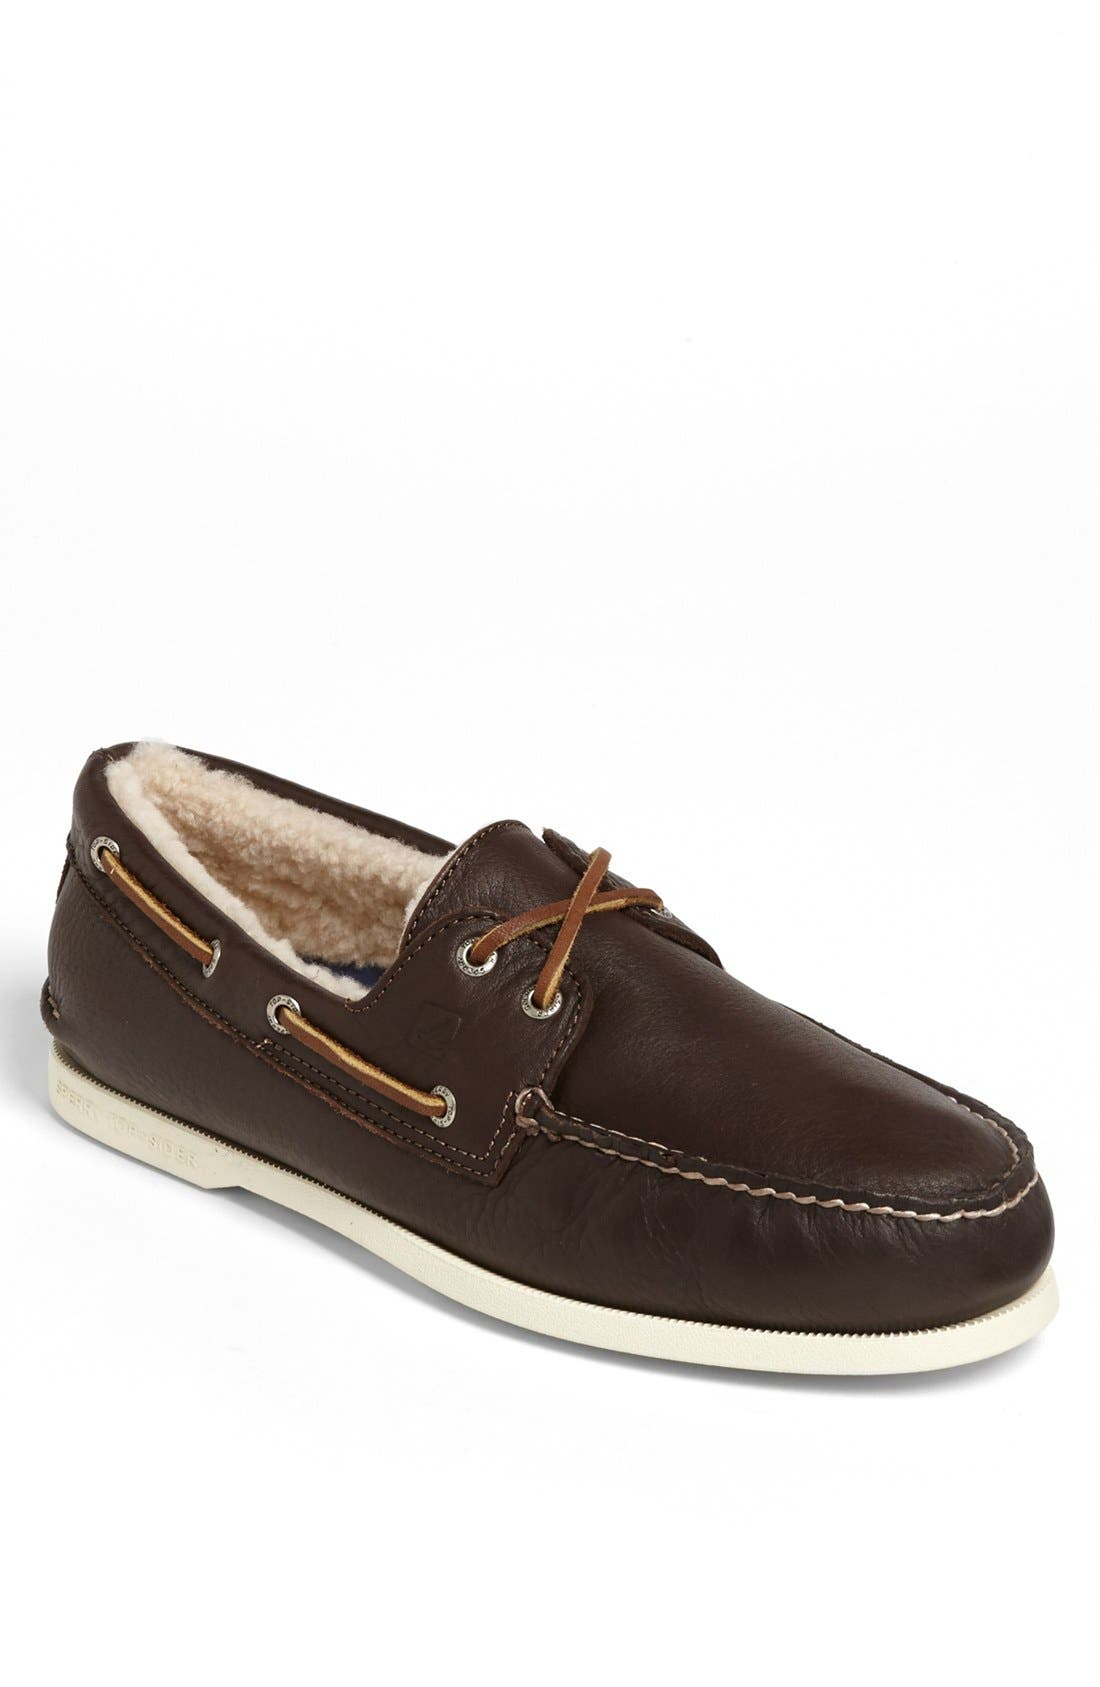 Alternate Image 1 Selected - Sperry Top-Sider® 'Authentic Original - Winter' Boat Shoe